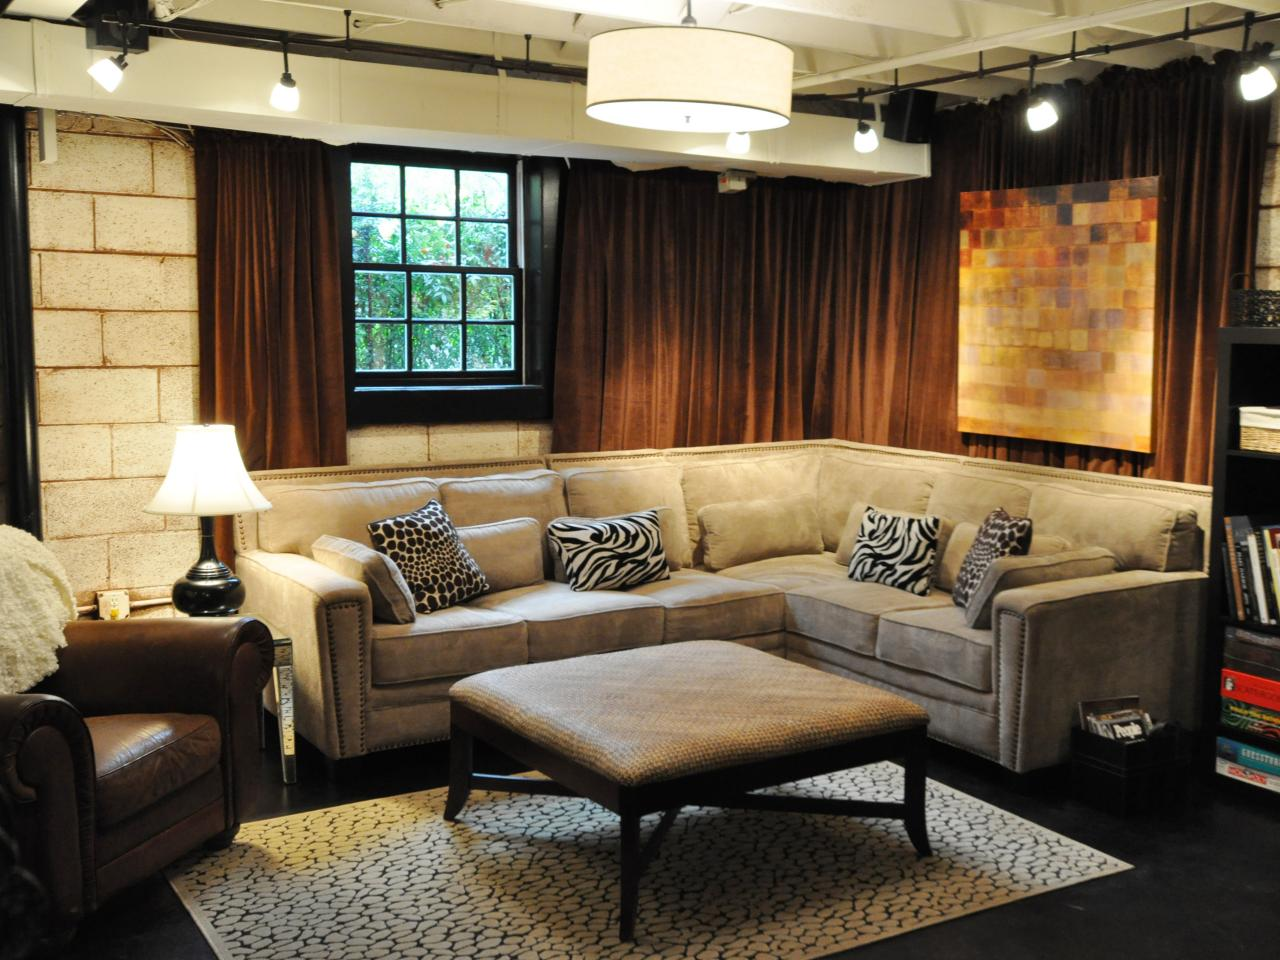 design basement ideas photo - 4